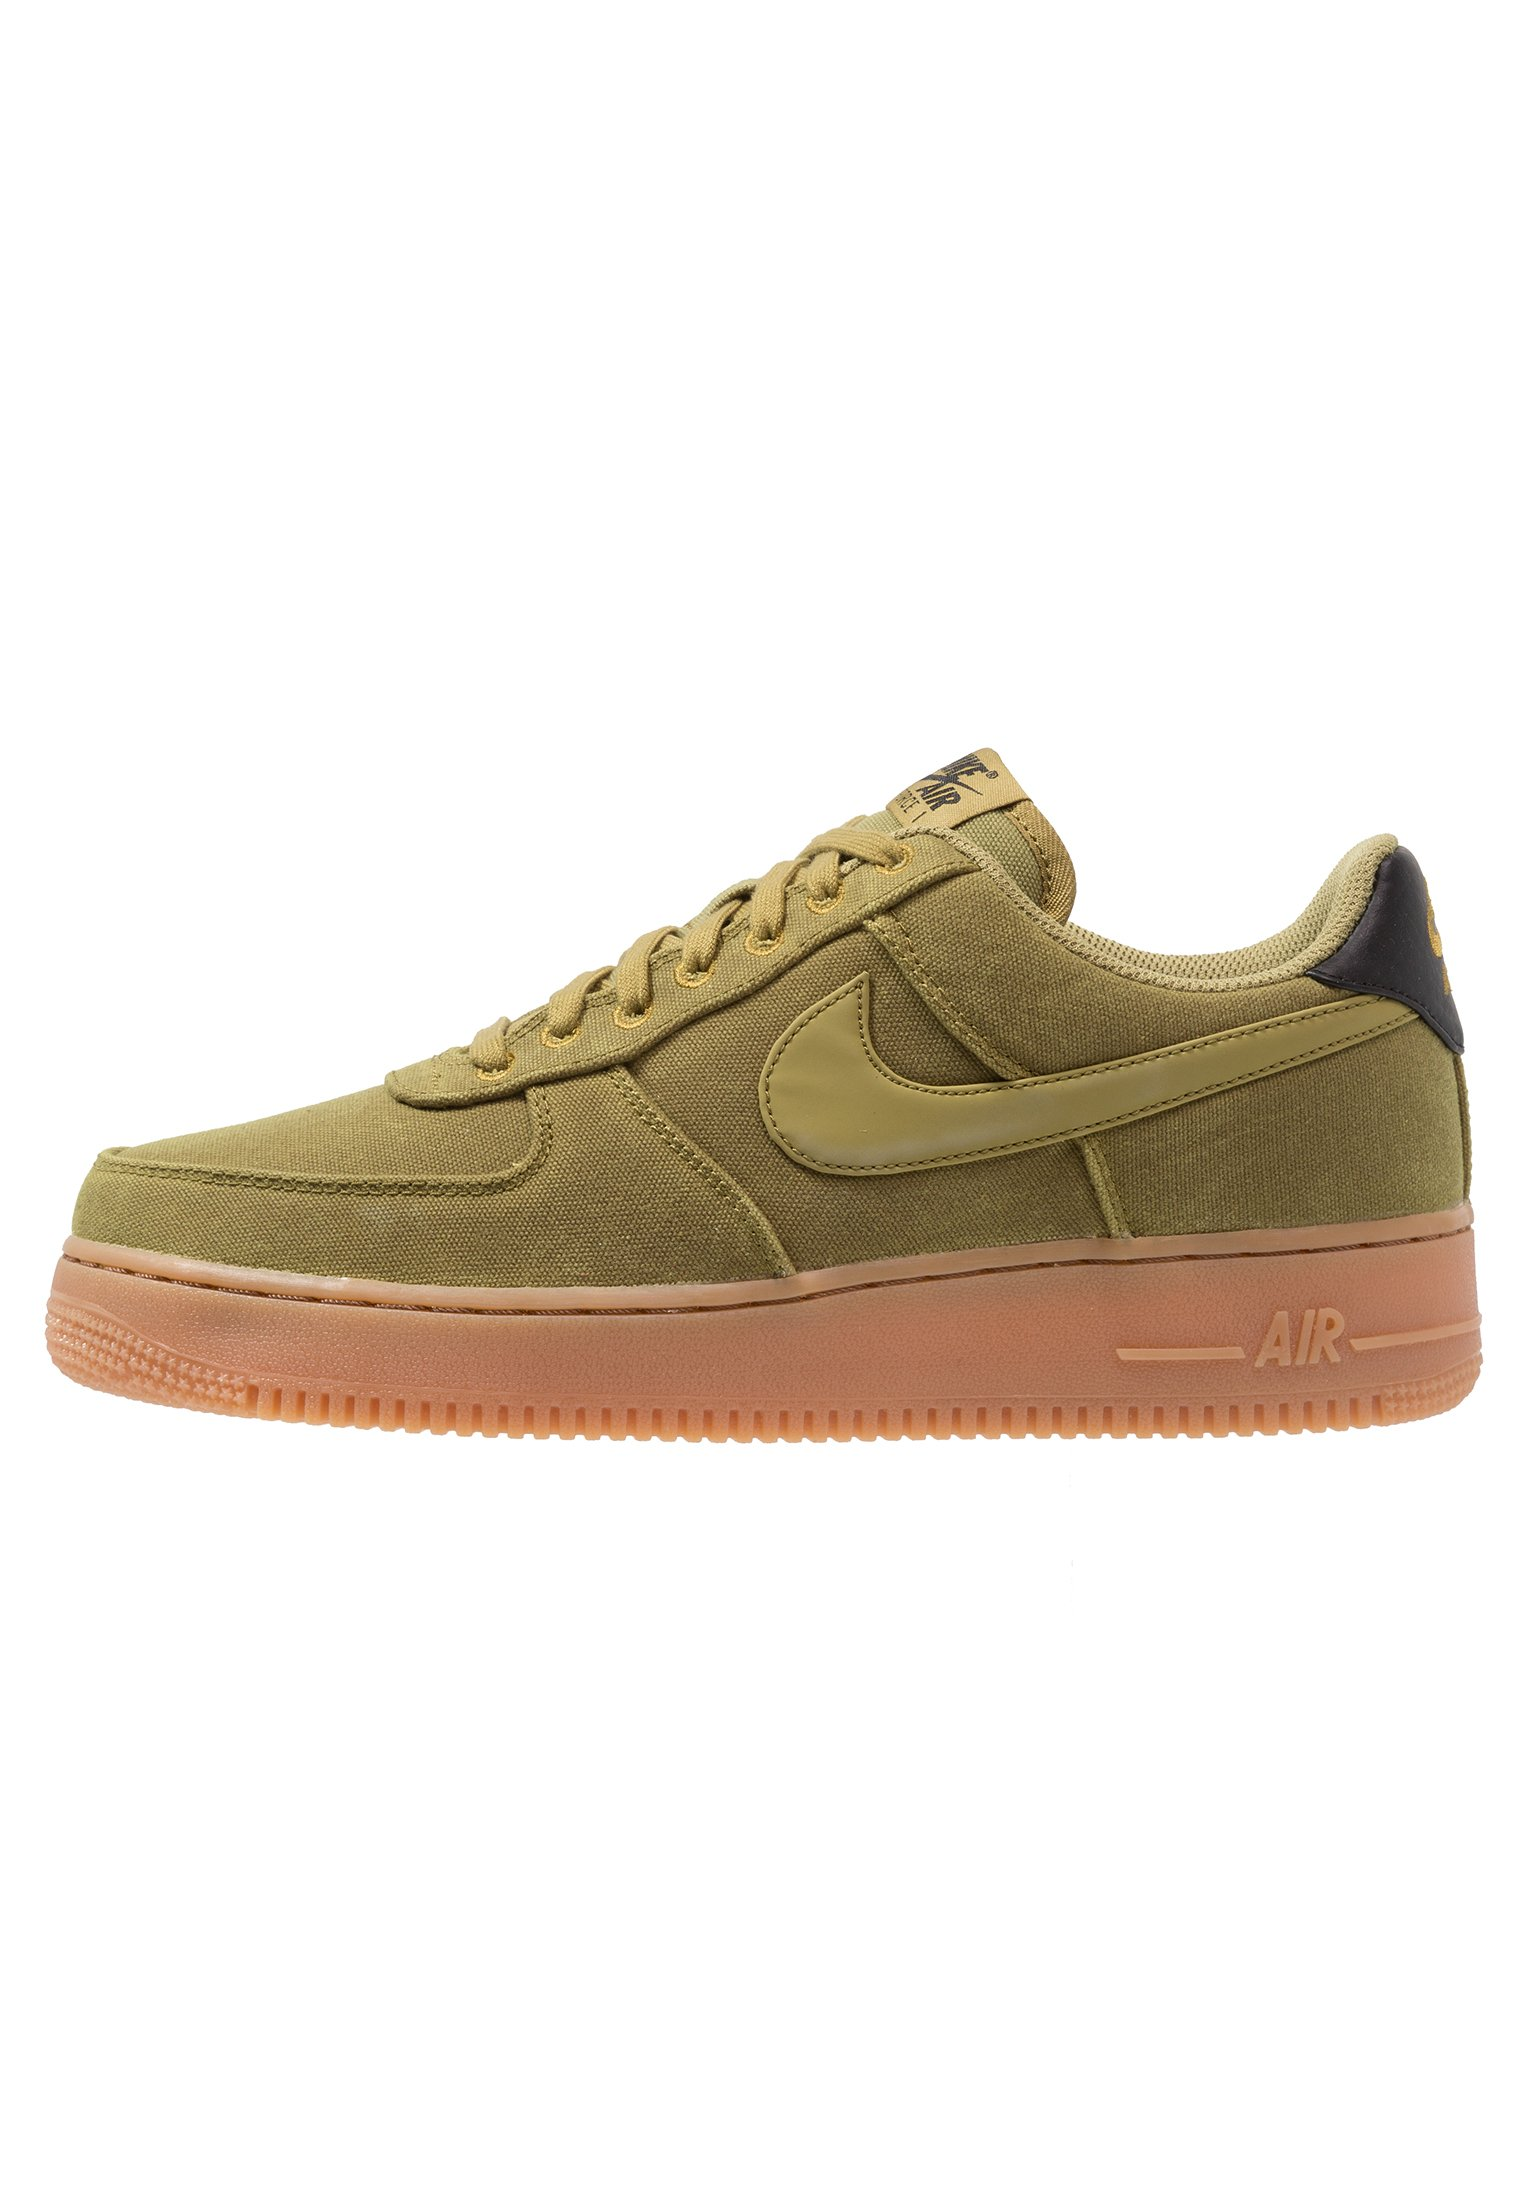 nike air force 1 '07 lv8 style green